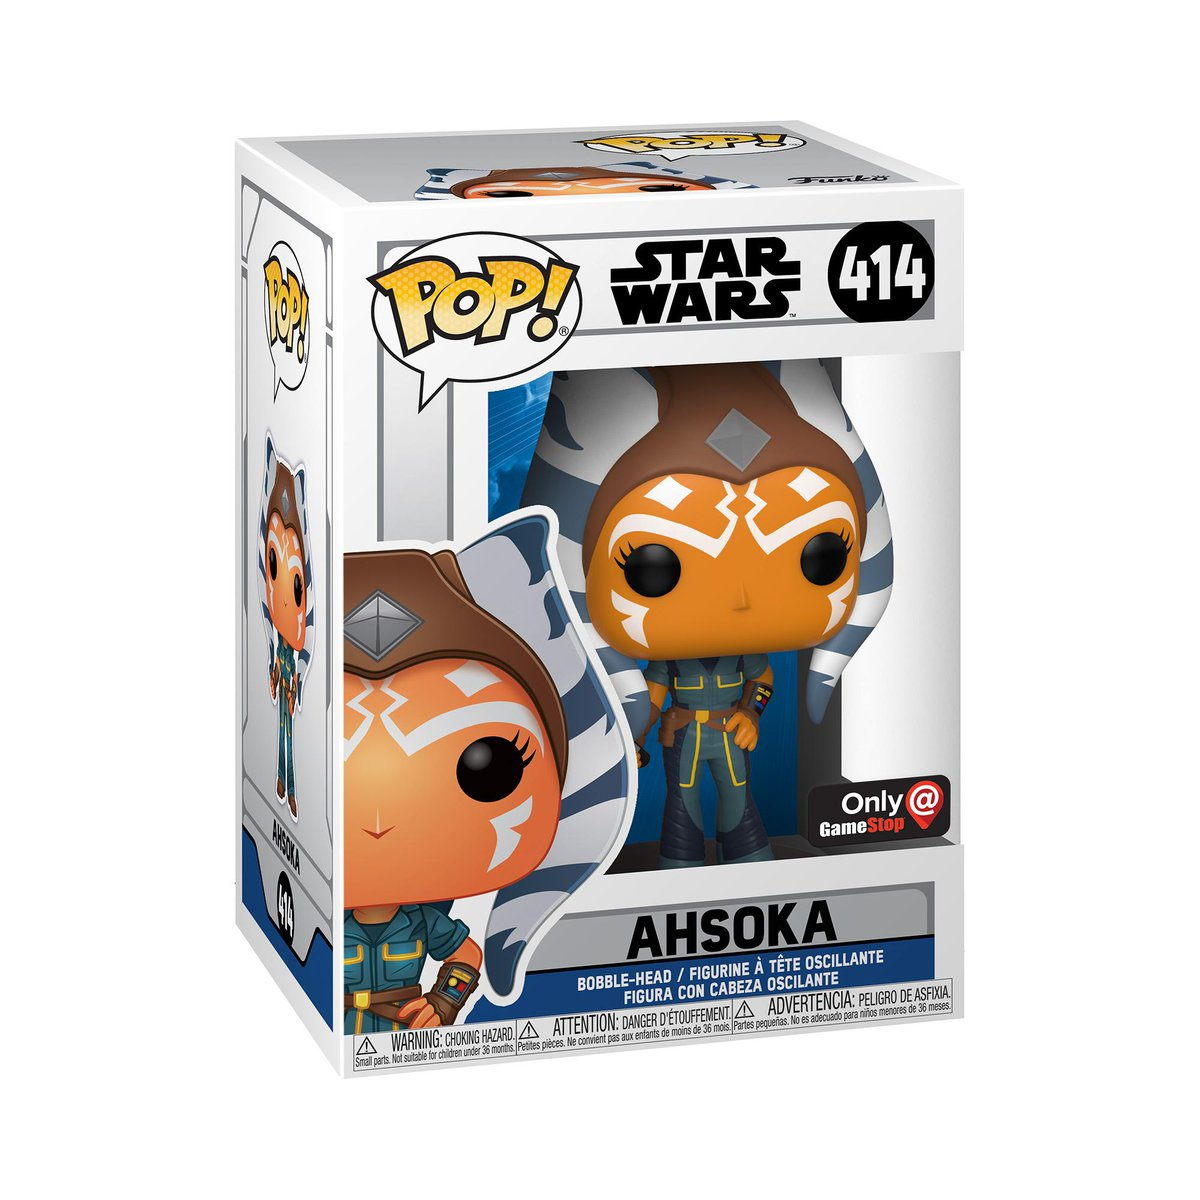 RT & follow @OriginalFunko for the chance to WIN this @GameStop exclusive Ahsoka Pop!  #Funkogiveaway #giveaway #Ahsoka